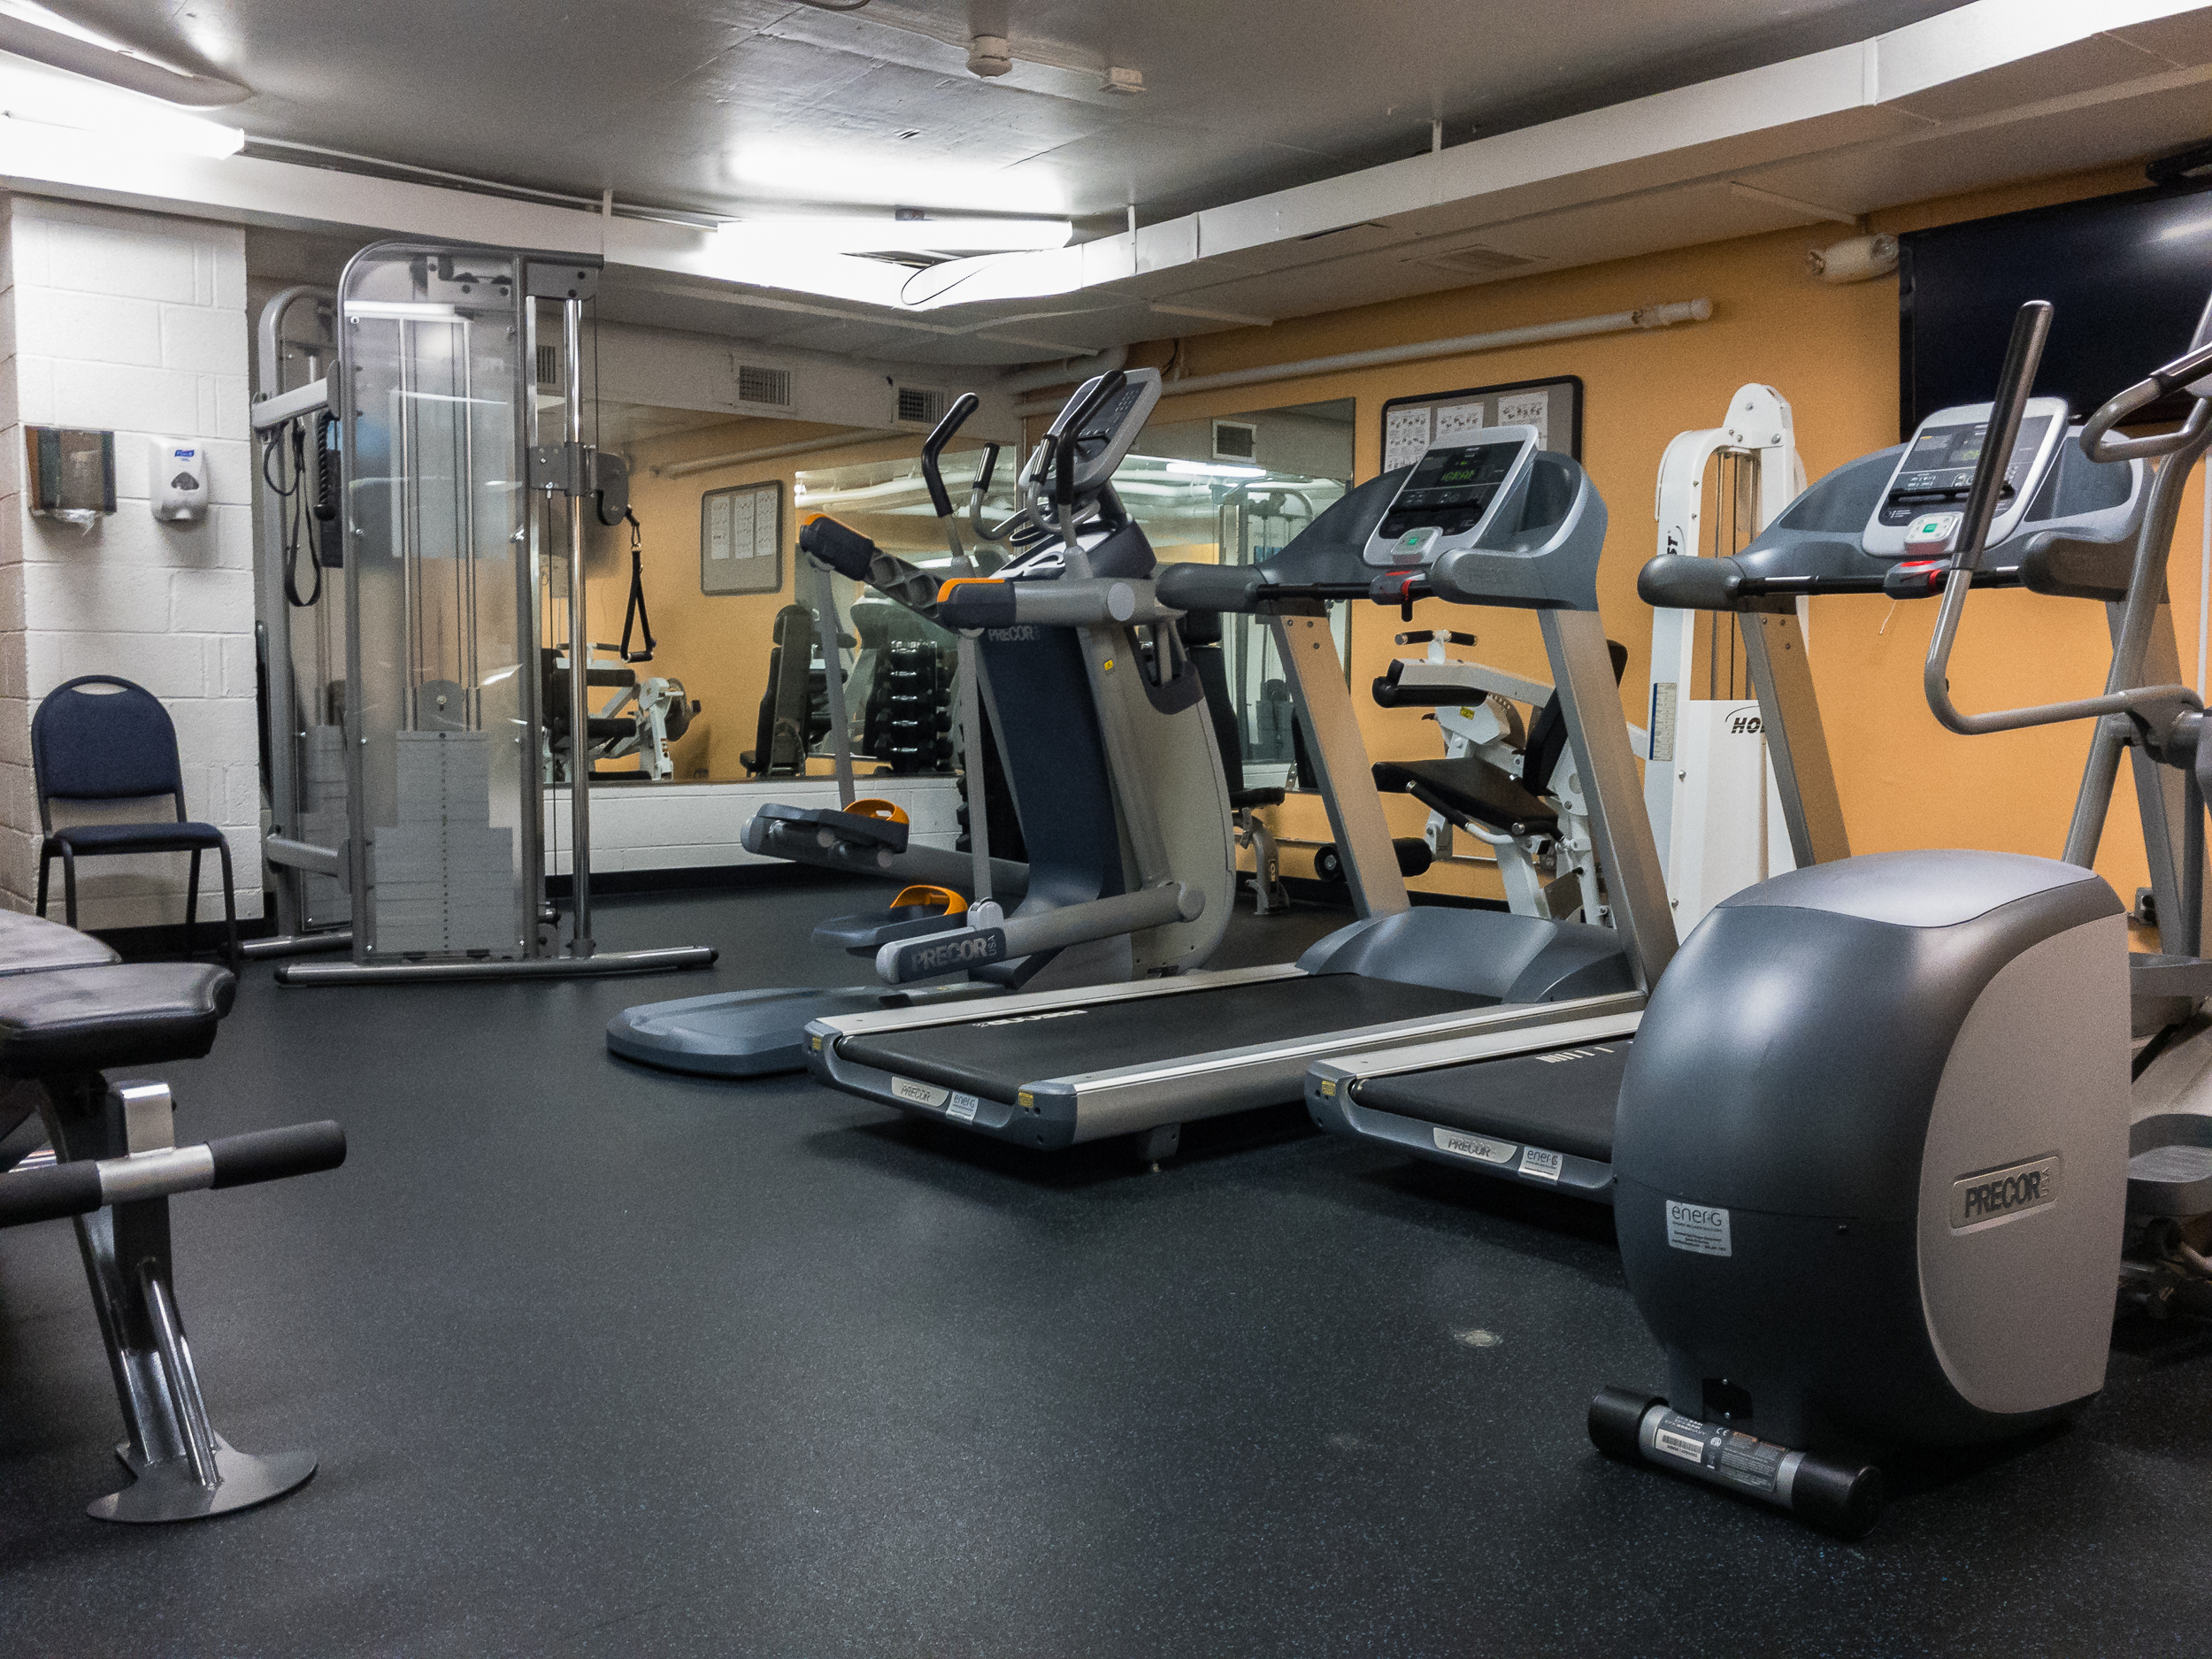 28_Watergate West Fitness Room 01.jpg